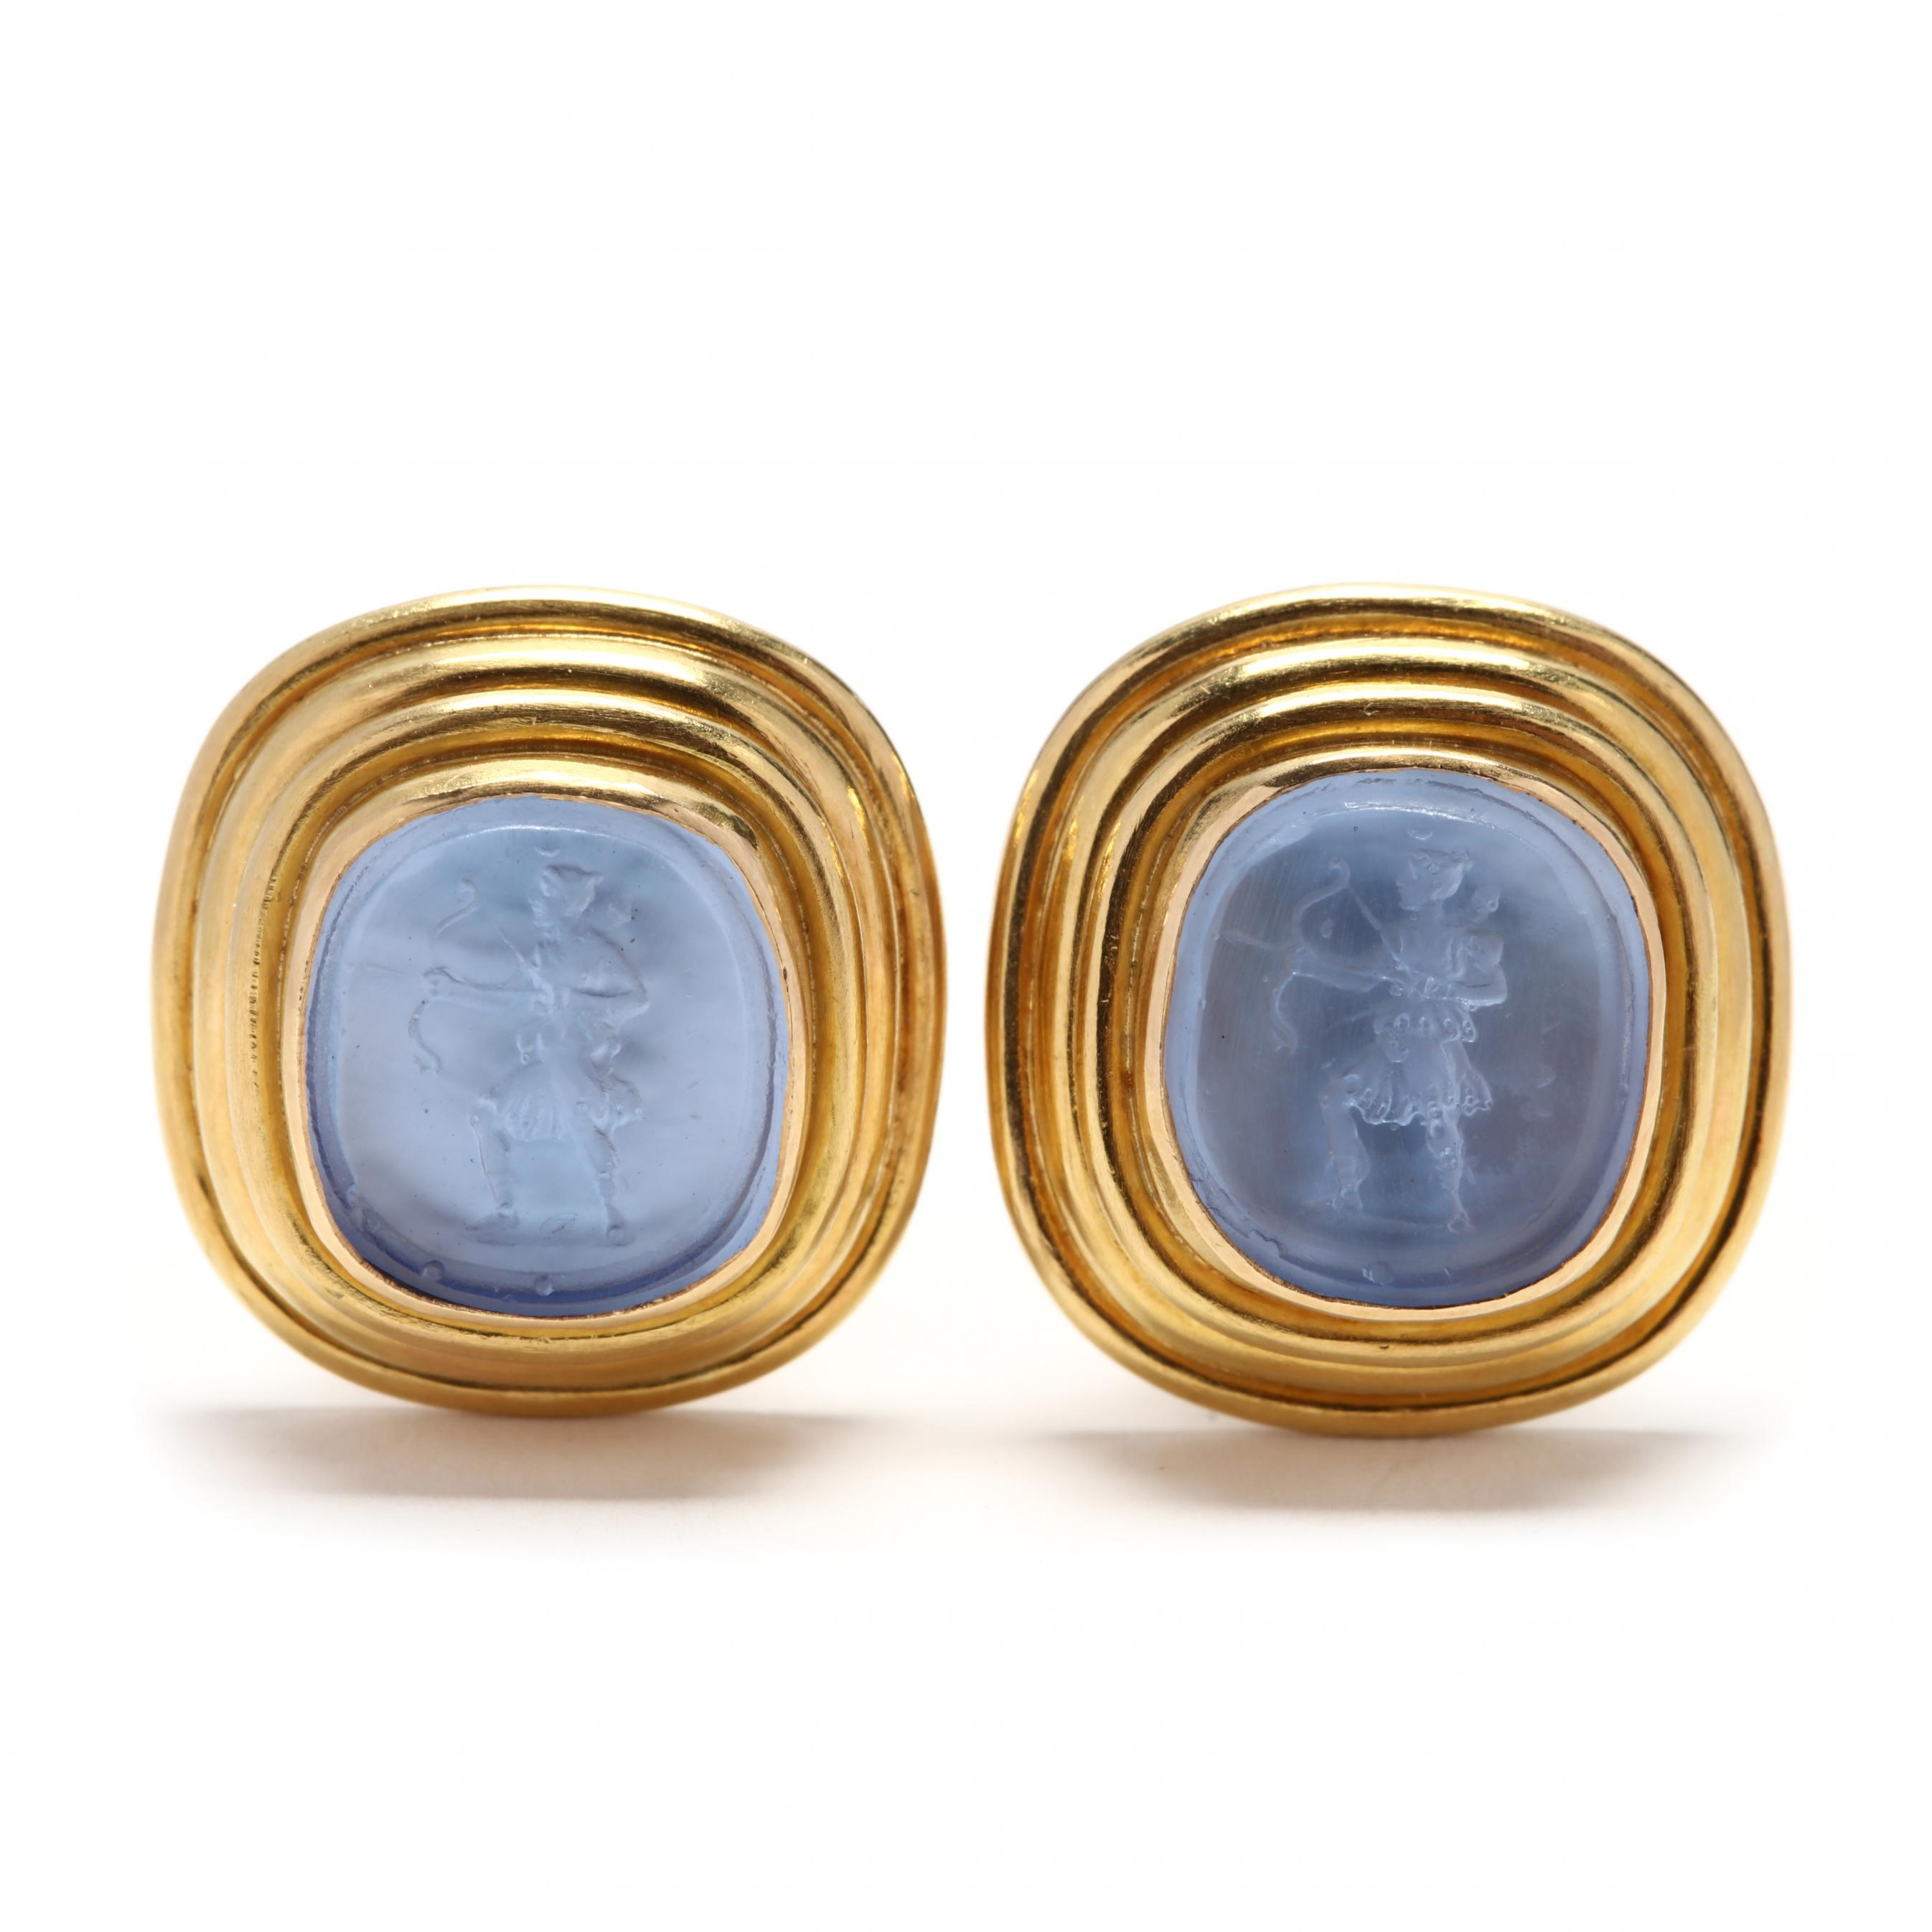 18kt-gold-and-venetian-glass-intaglio-earrings-elizabeth-locke